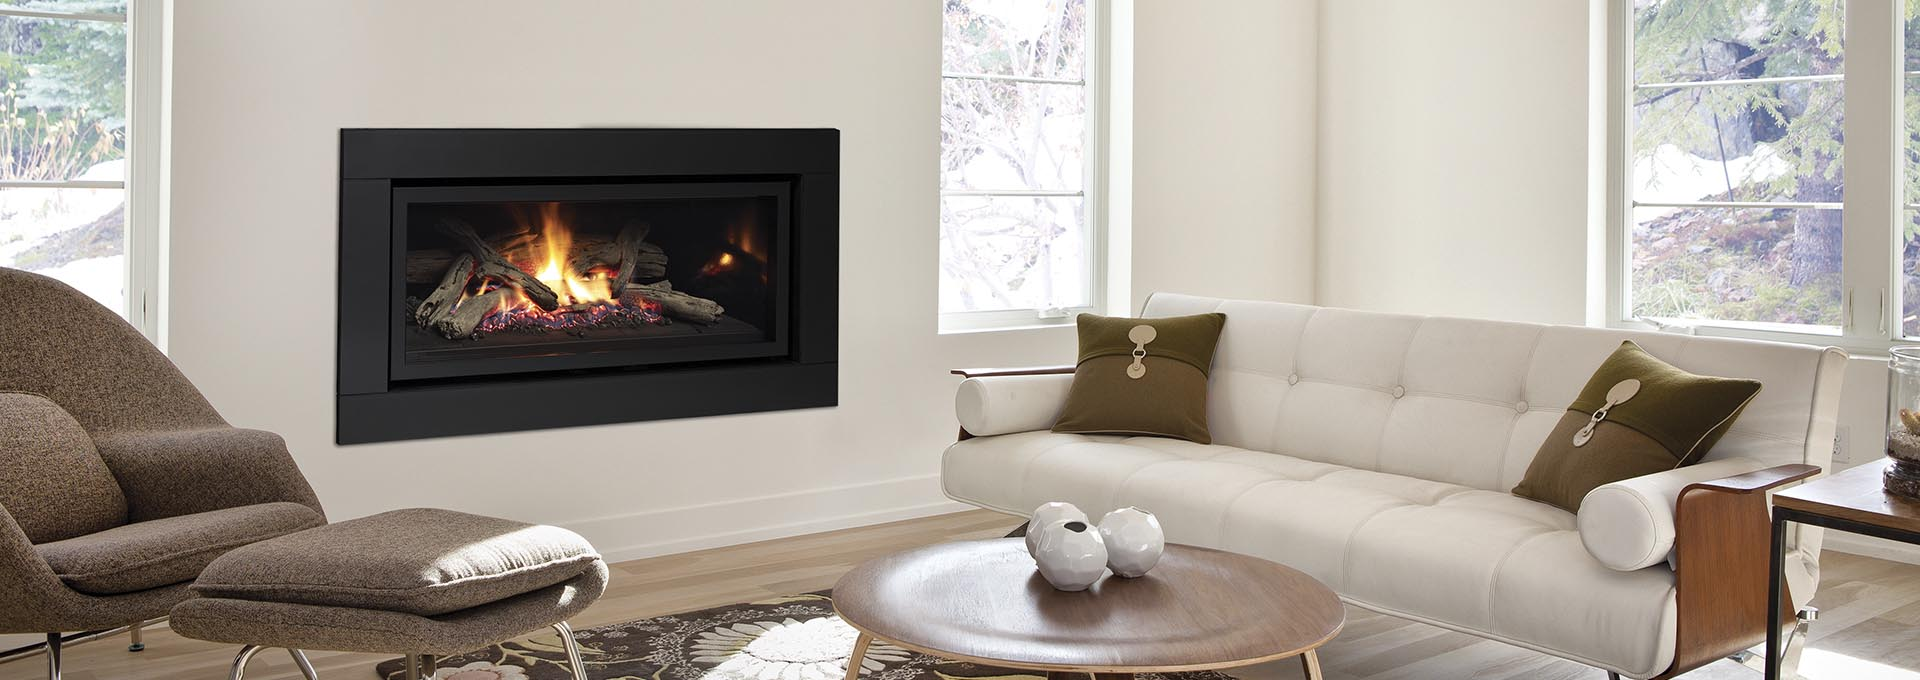 Picking The Perfect Fireplace For Your Home Regency Fireplace